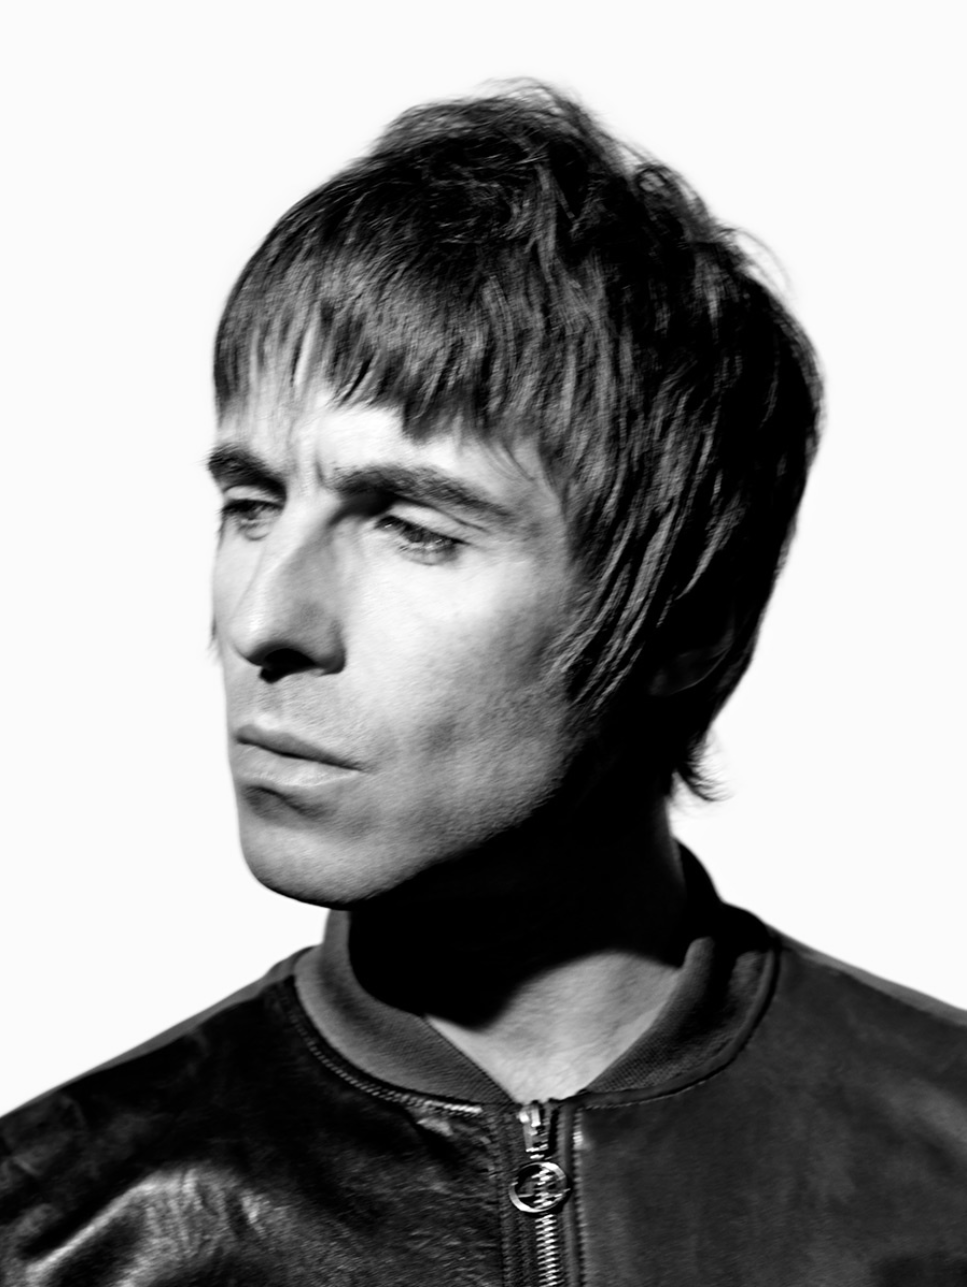 Image by Neil Bedford, all rights reserved.Liam Gallagher, Neil Bedford for Clash Magazine, 2014.